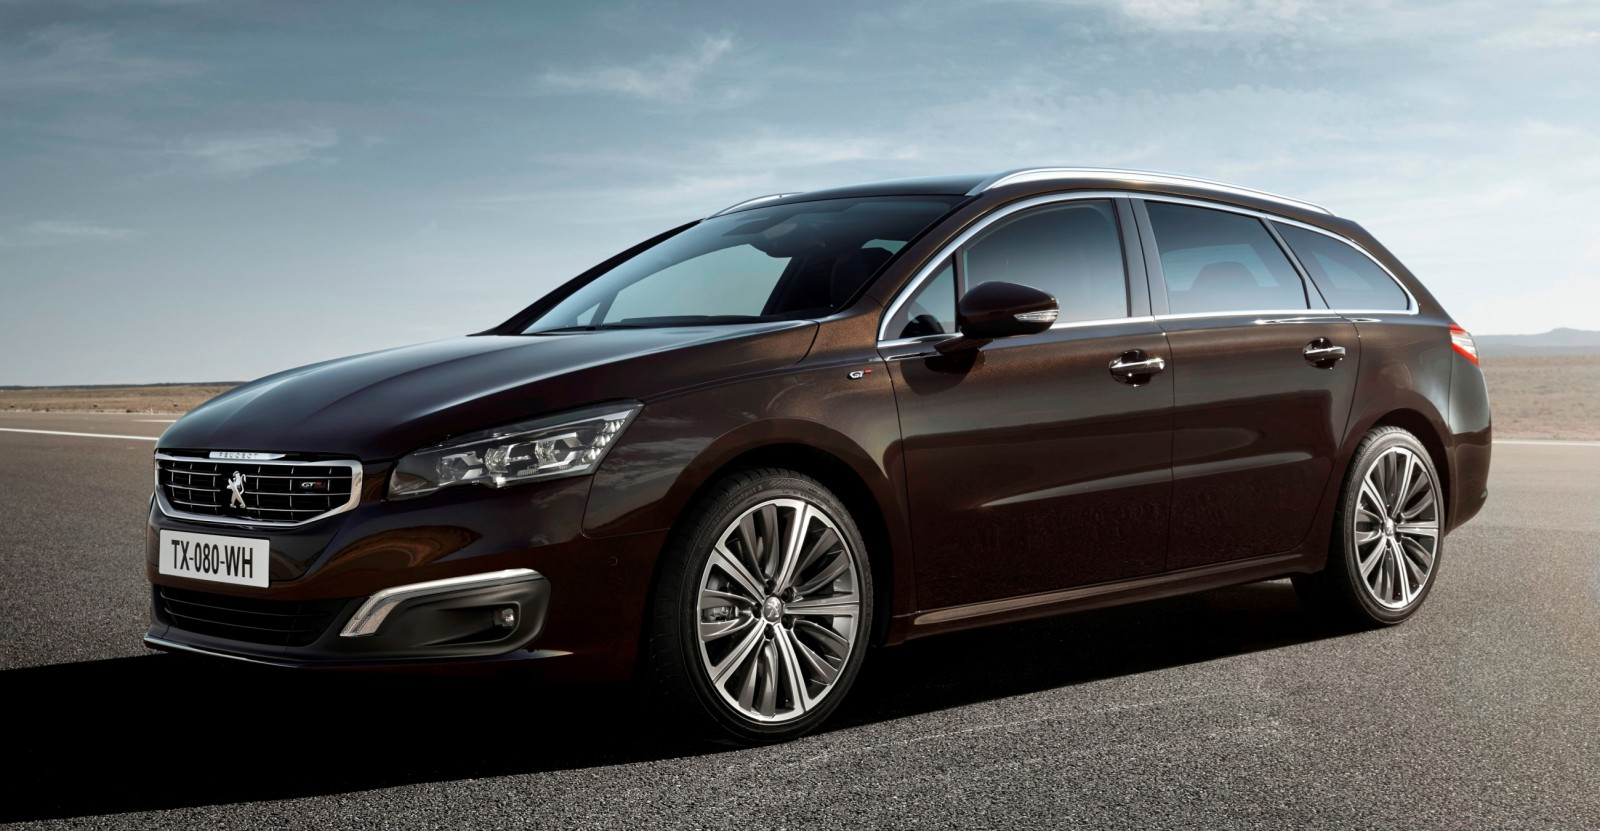 Update2 New Photos - 2015 Peugeot 508 Facelifted With New LED DRLs, Box-Design Beams and Tweaked Cabin Tech 25